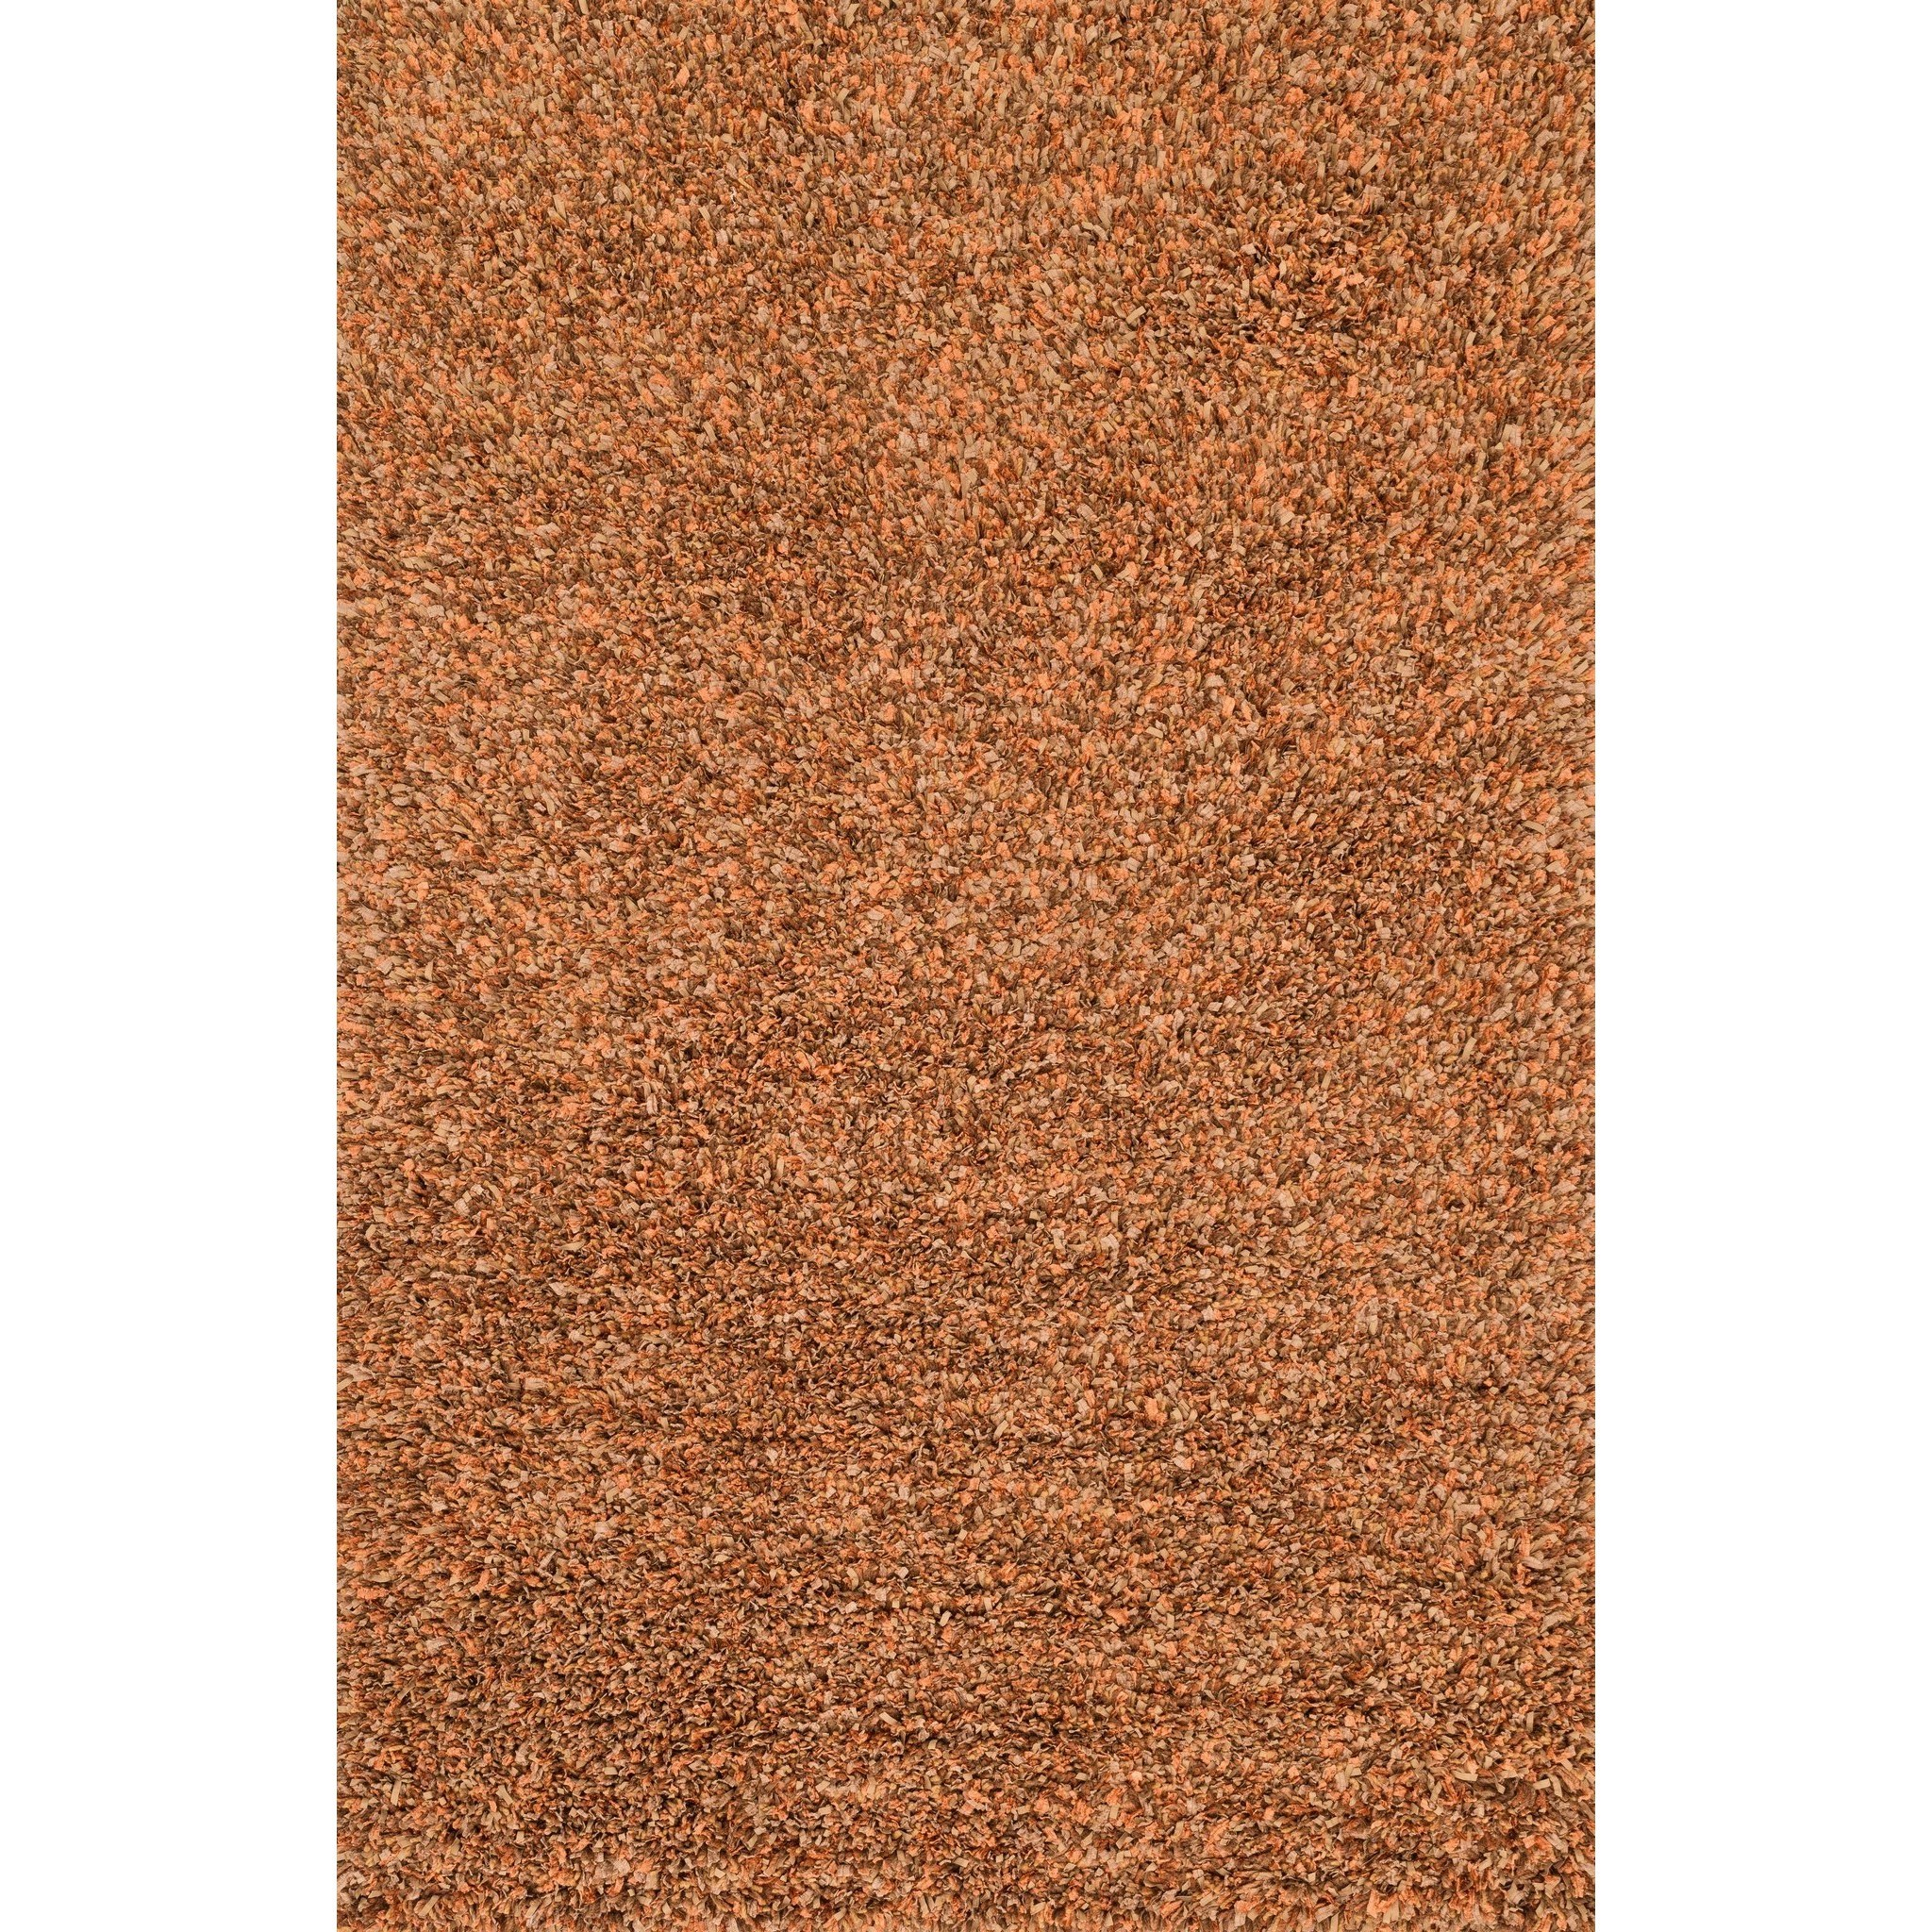 "Cleo Shag 7'-6"" x 9'-6"" Area Rug by Loloi Rugs at Pedigo Furniture"